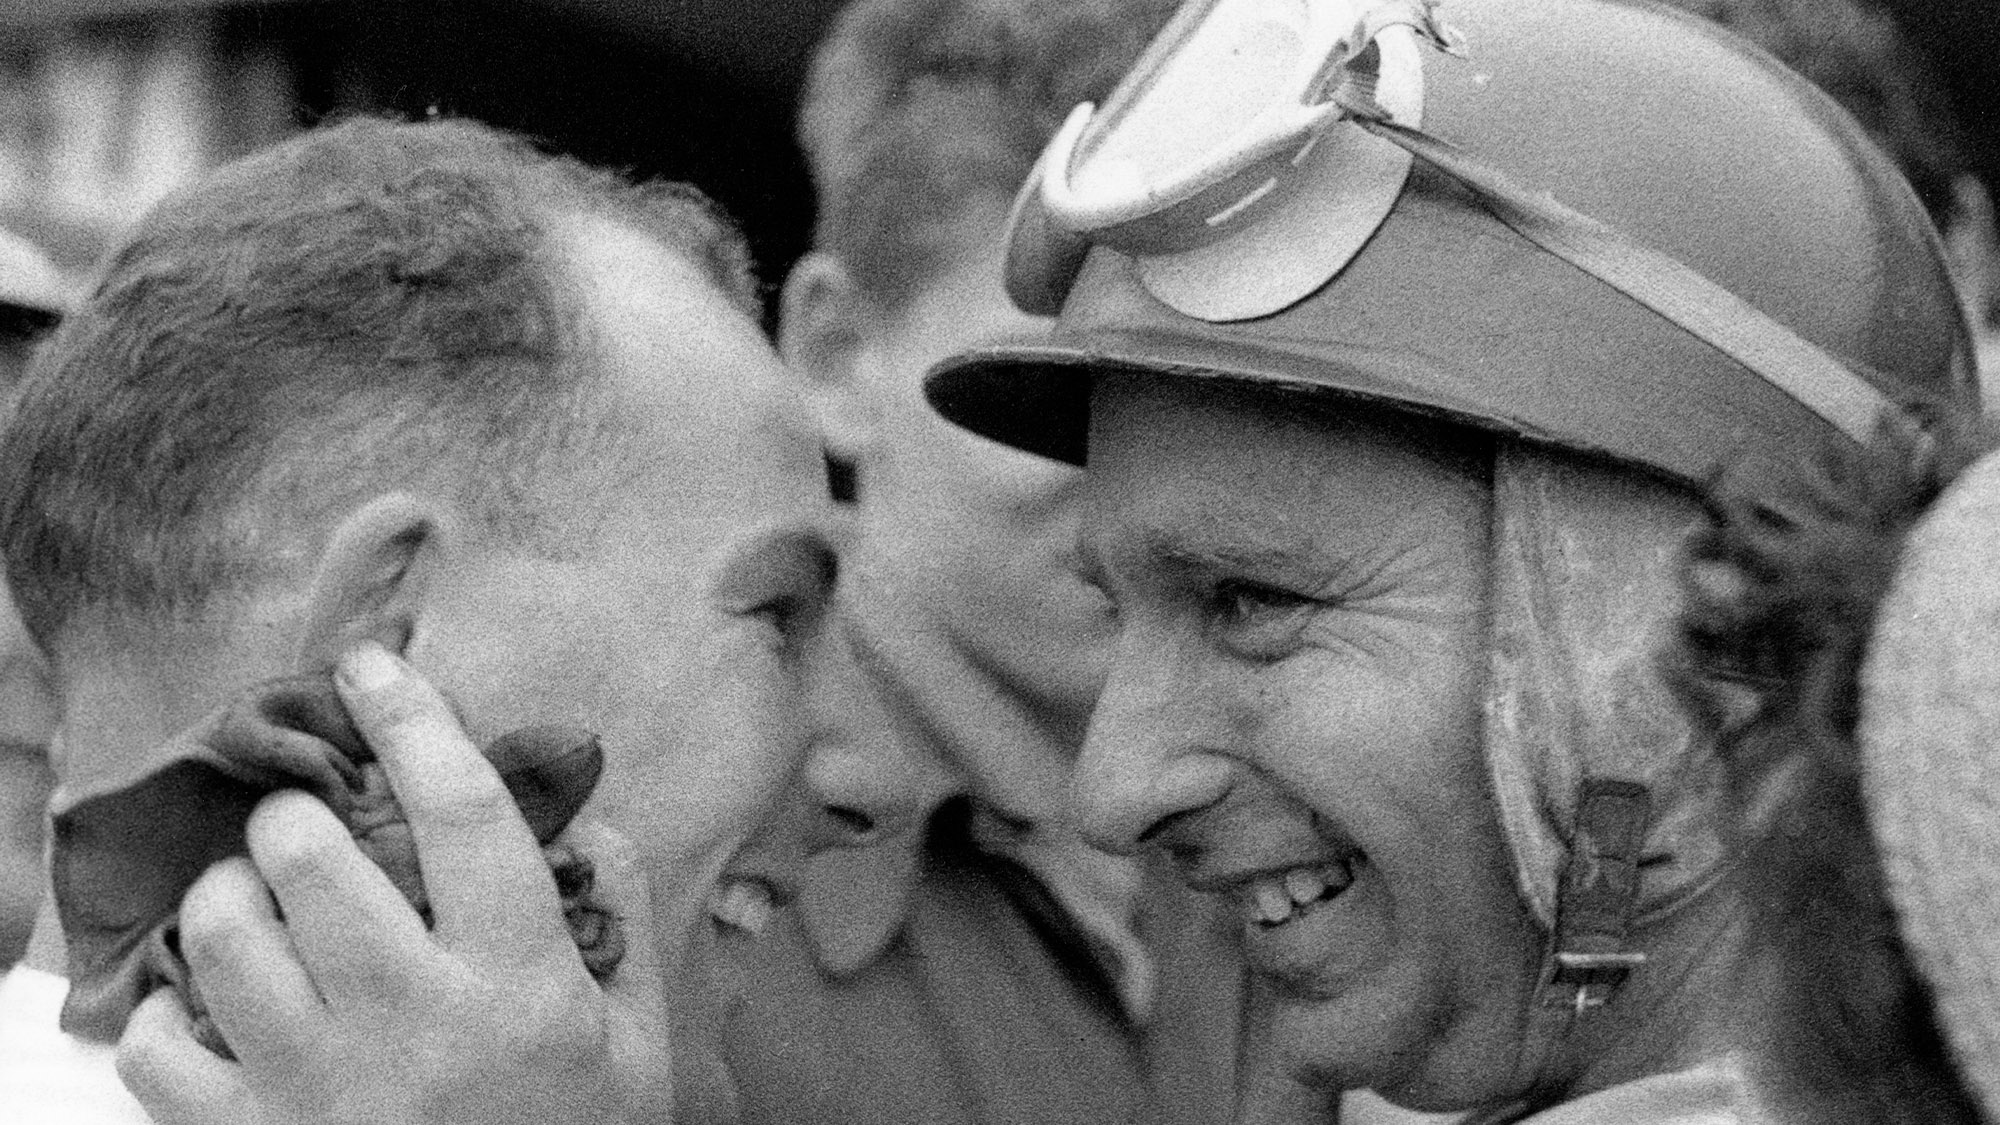 Stirling Moss with Juan Manuel Fangio